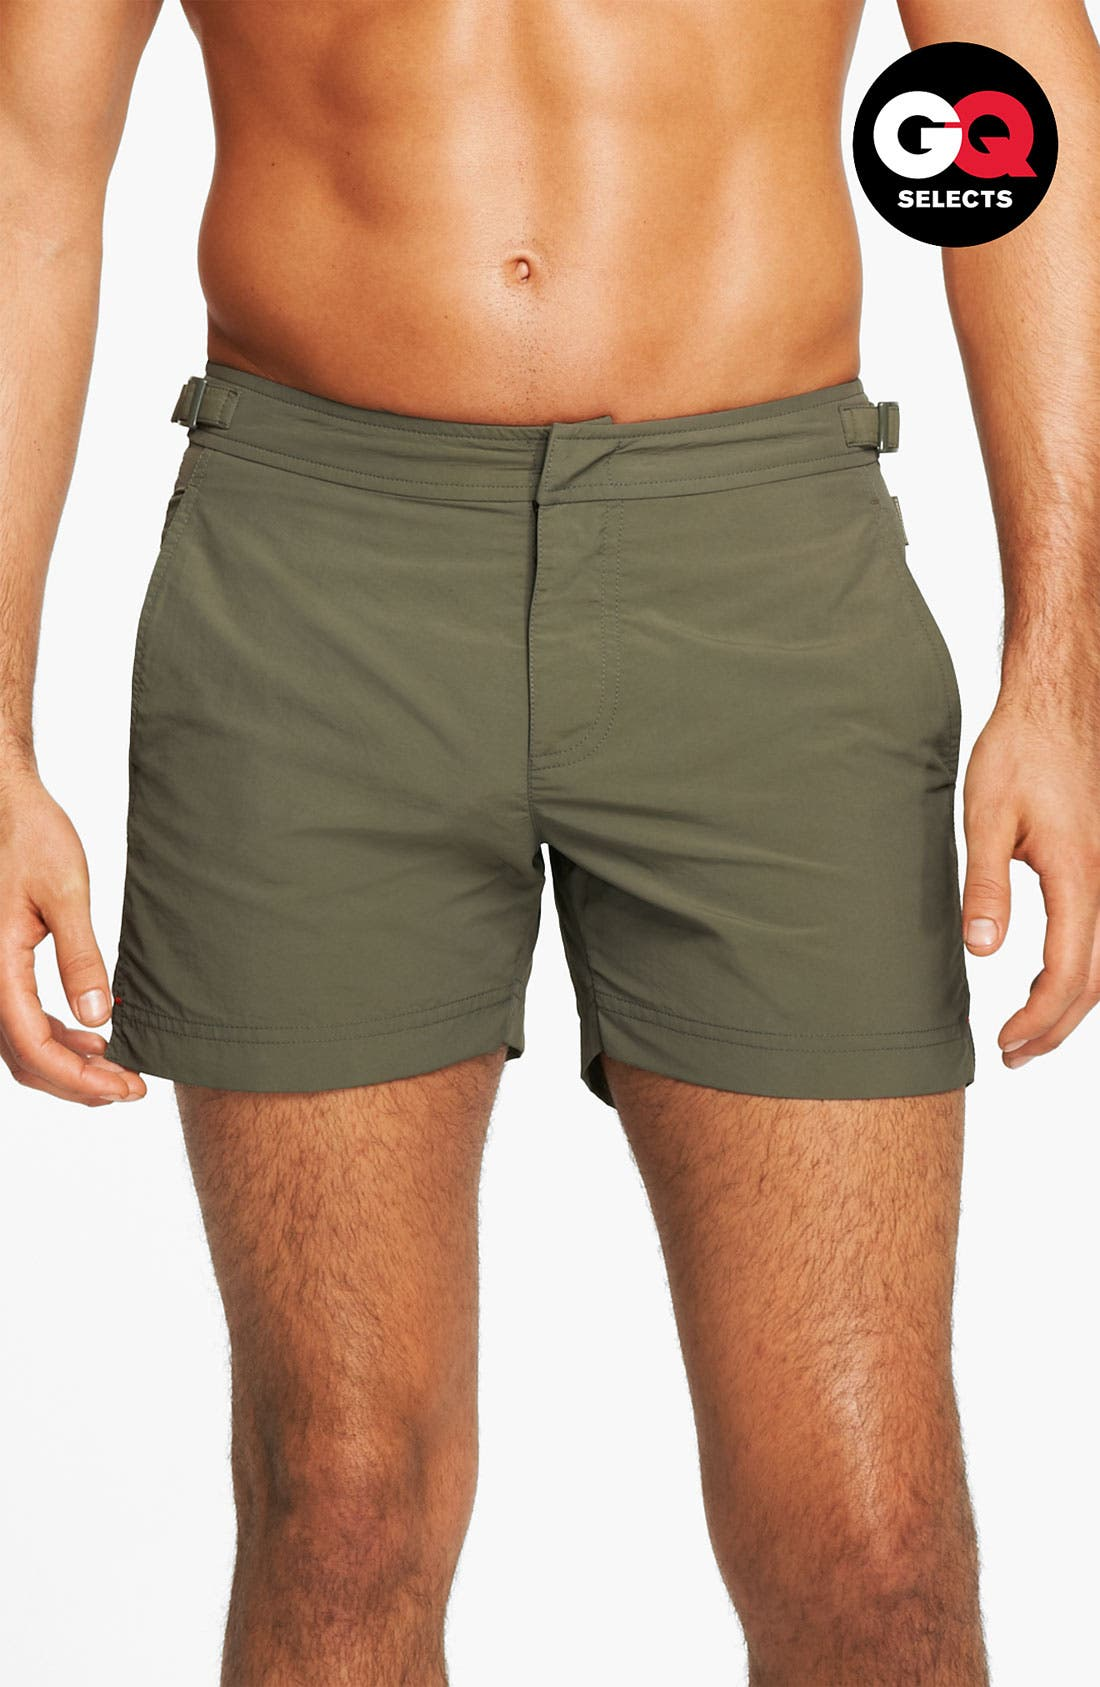 Alternate Image 1 Selected - Orlebar Brown 'Setter' Swim Trunks